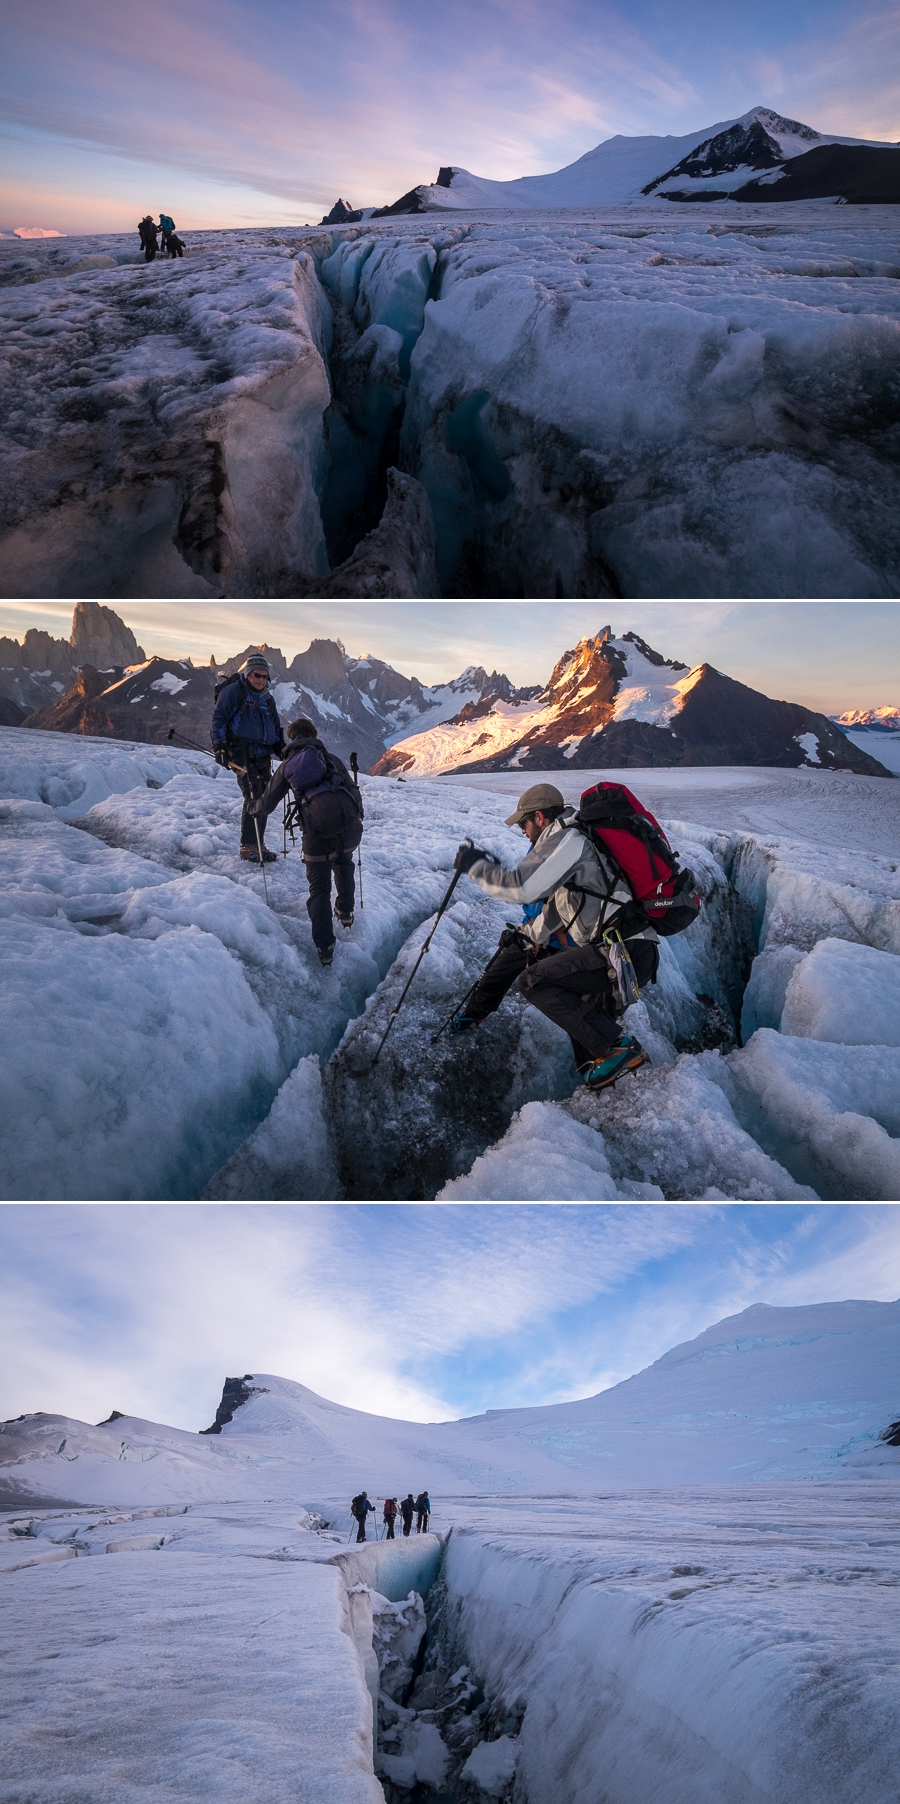 Images of crevasse field - Gorra Blanca - South Patagonia Icefield Expedition - Argentina